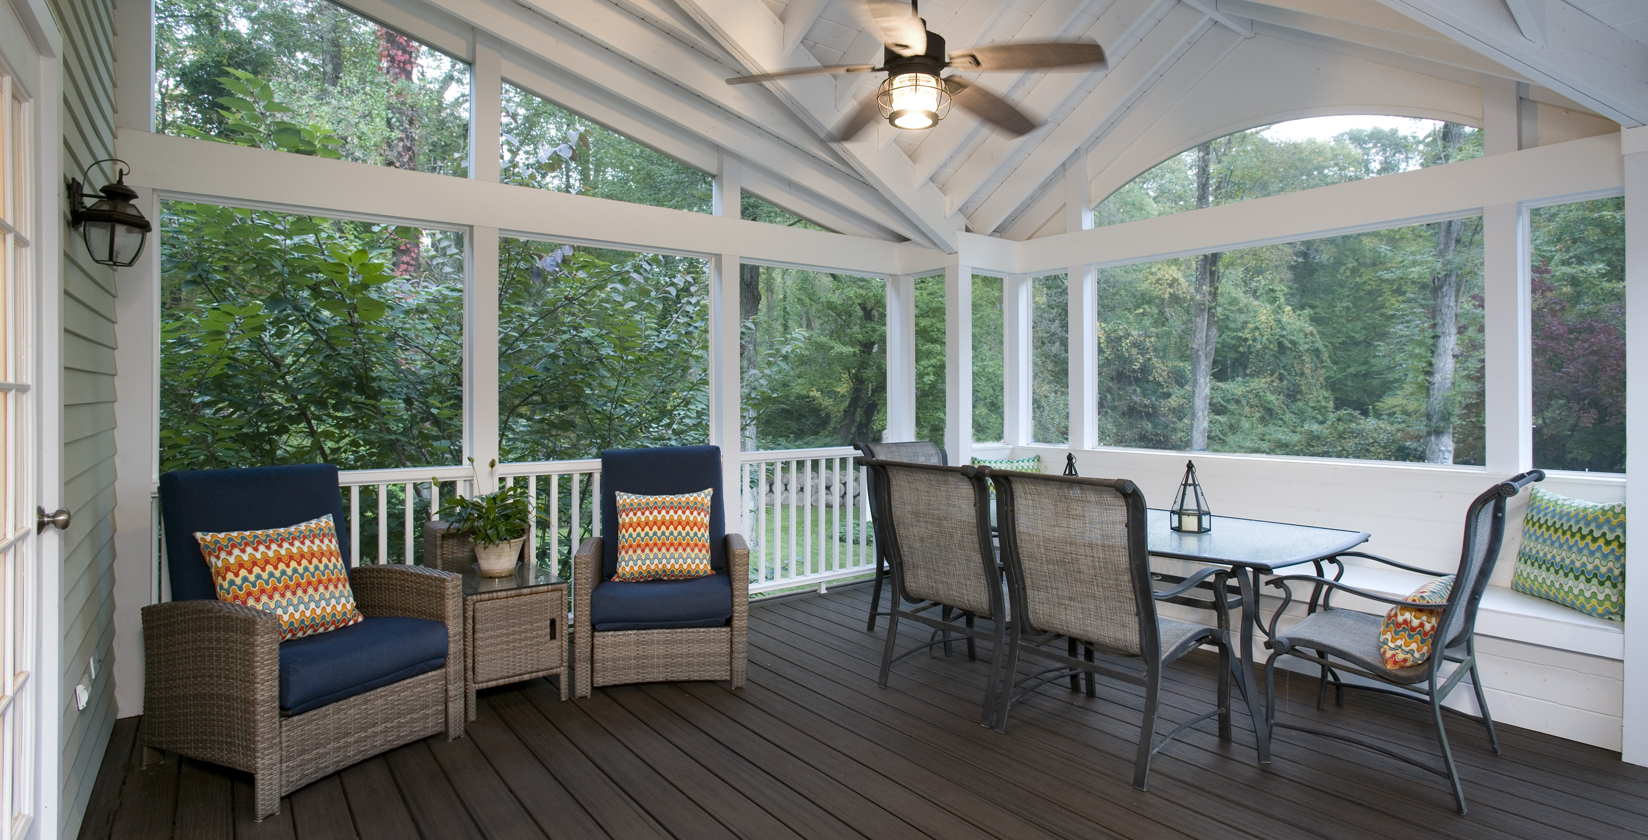 A Screened Porch The Best Of Both Worlds